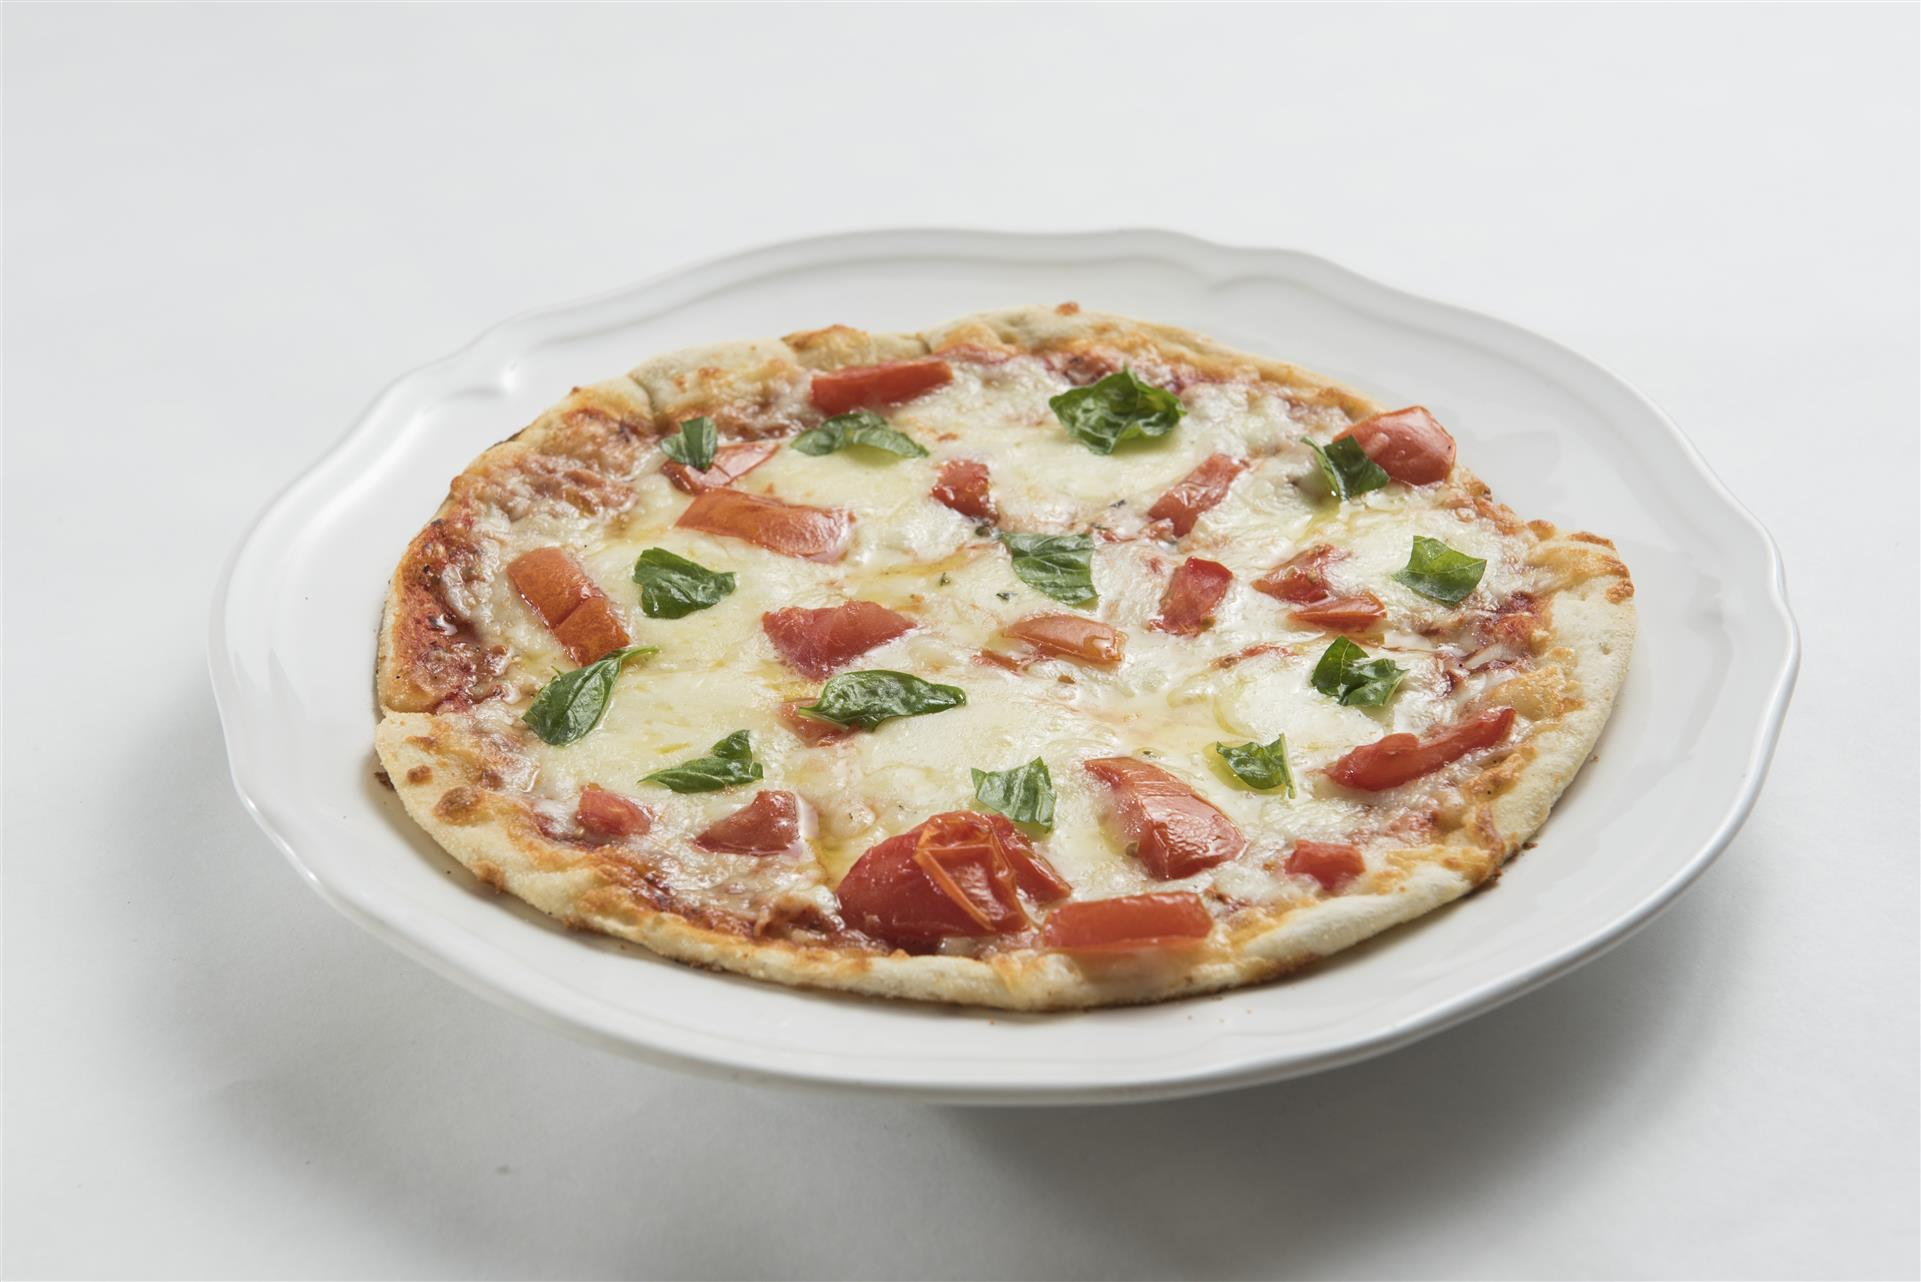 Cheese pizza topped with tomatoes and fresh basil